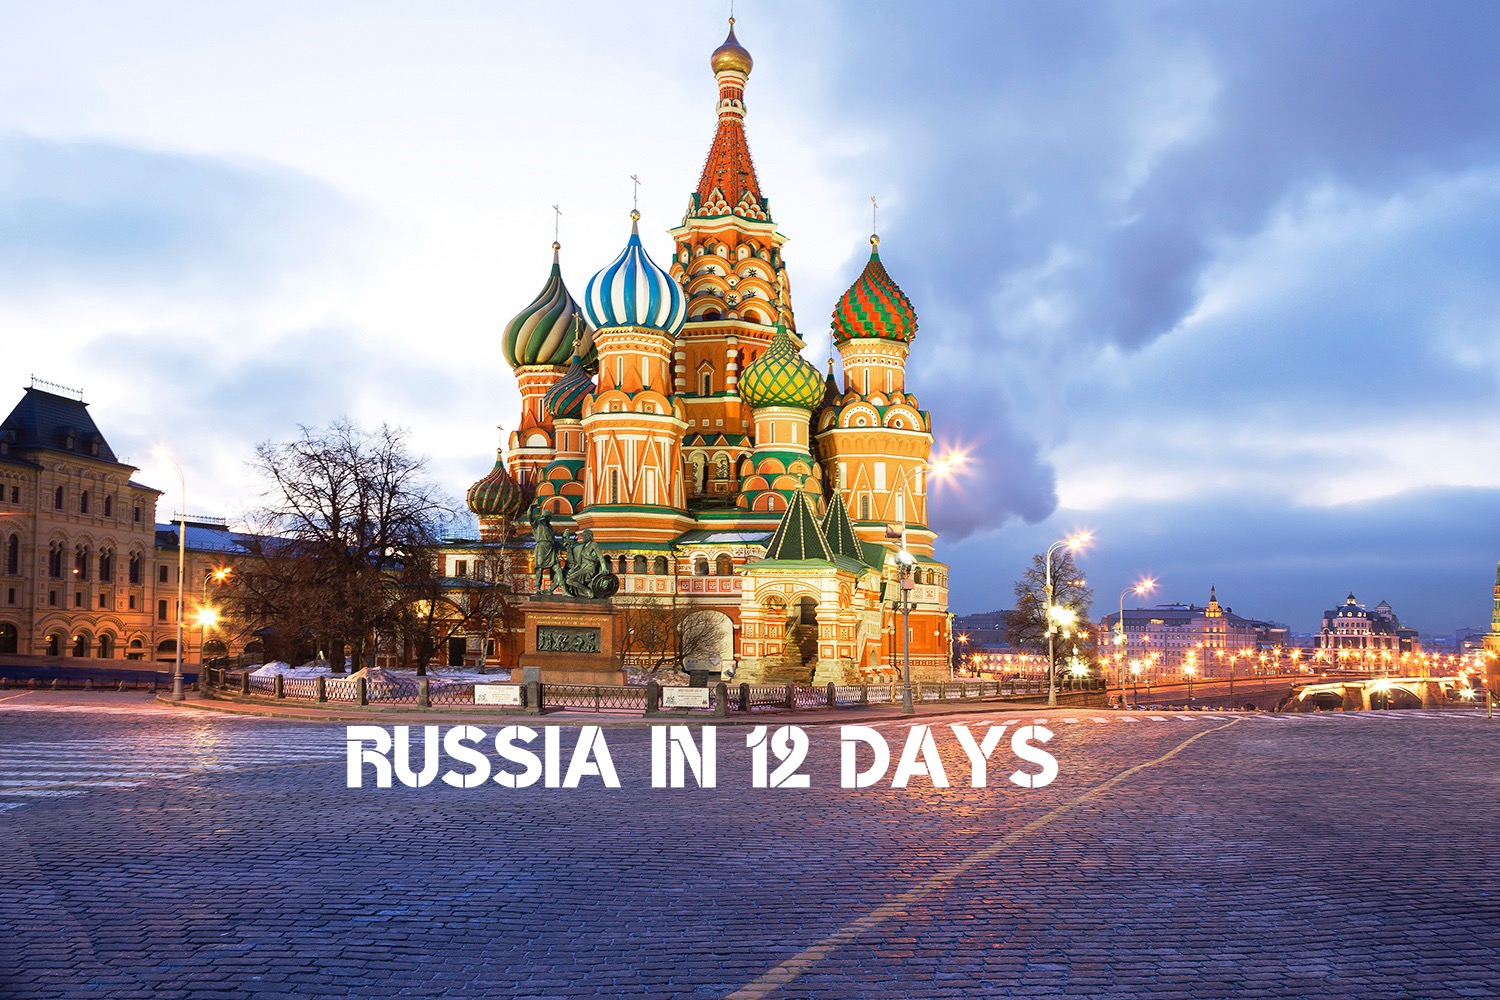 12 DAYS IN RUSSIA – A DETAILED TRAVEL PLAN ITINERARY